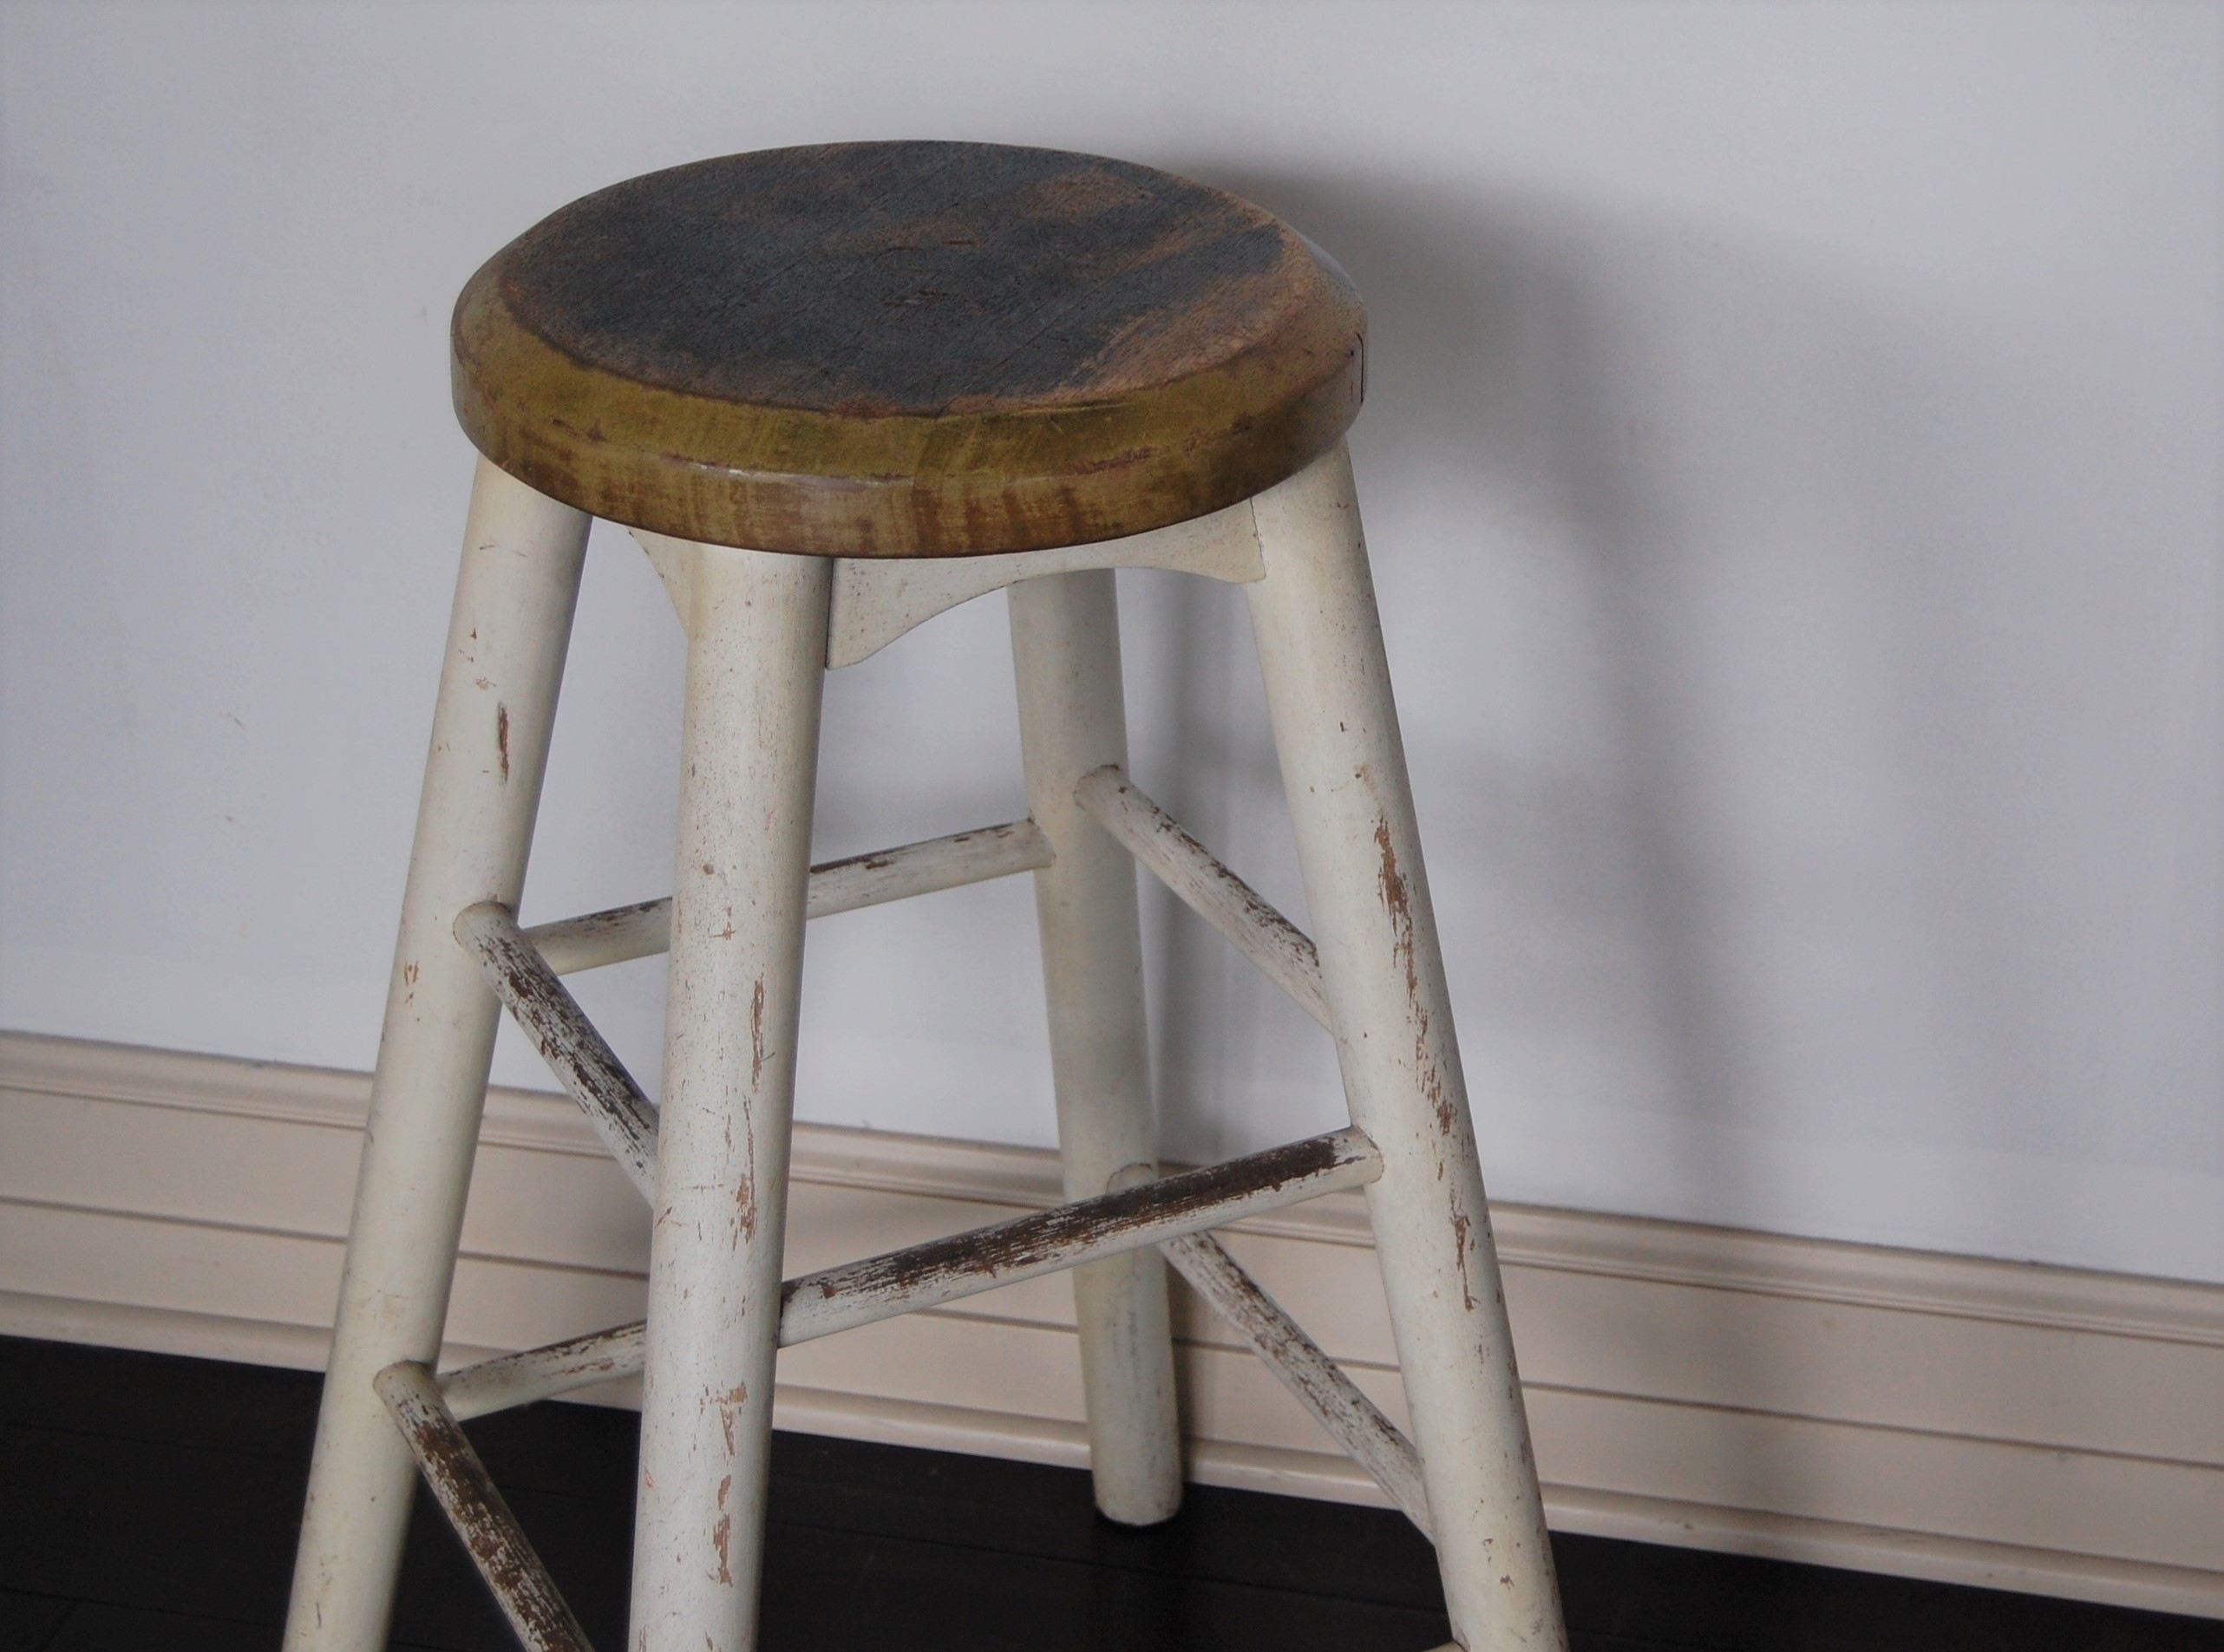 Phenomenal Rustic Wood Farm Stool Marinus Home Seattle Online Store Creativecarmelina Interior Chair Design Creativecarmelinacom